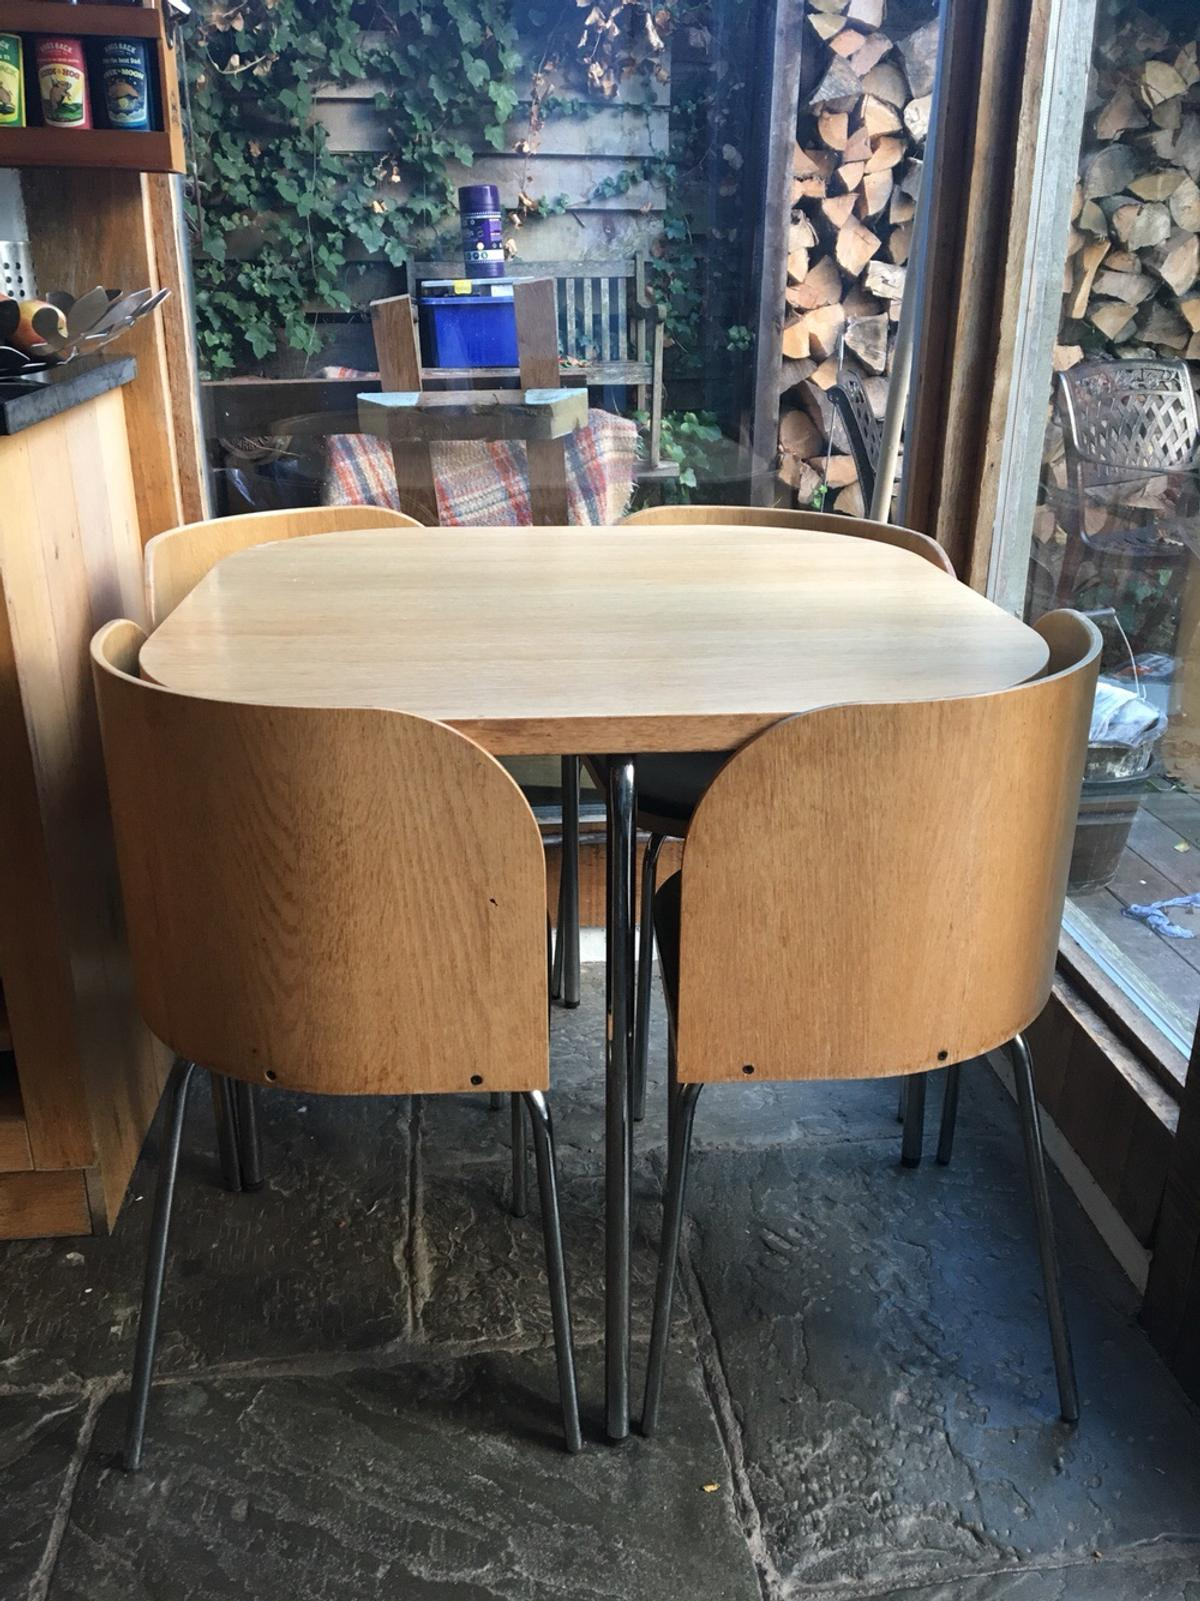 Ikea Fusion Table And Chairs In Cr3 Warlingham For 50 00 For Sale Shpock